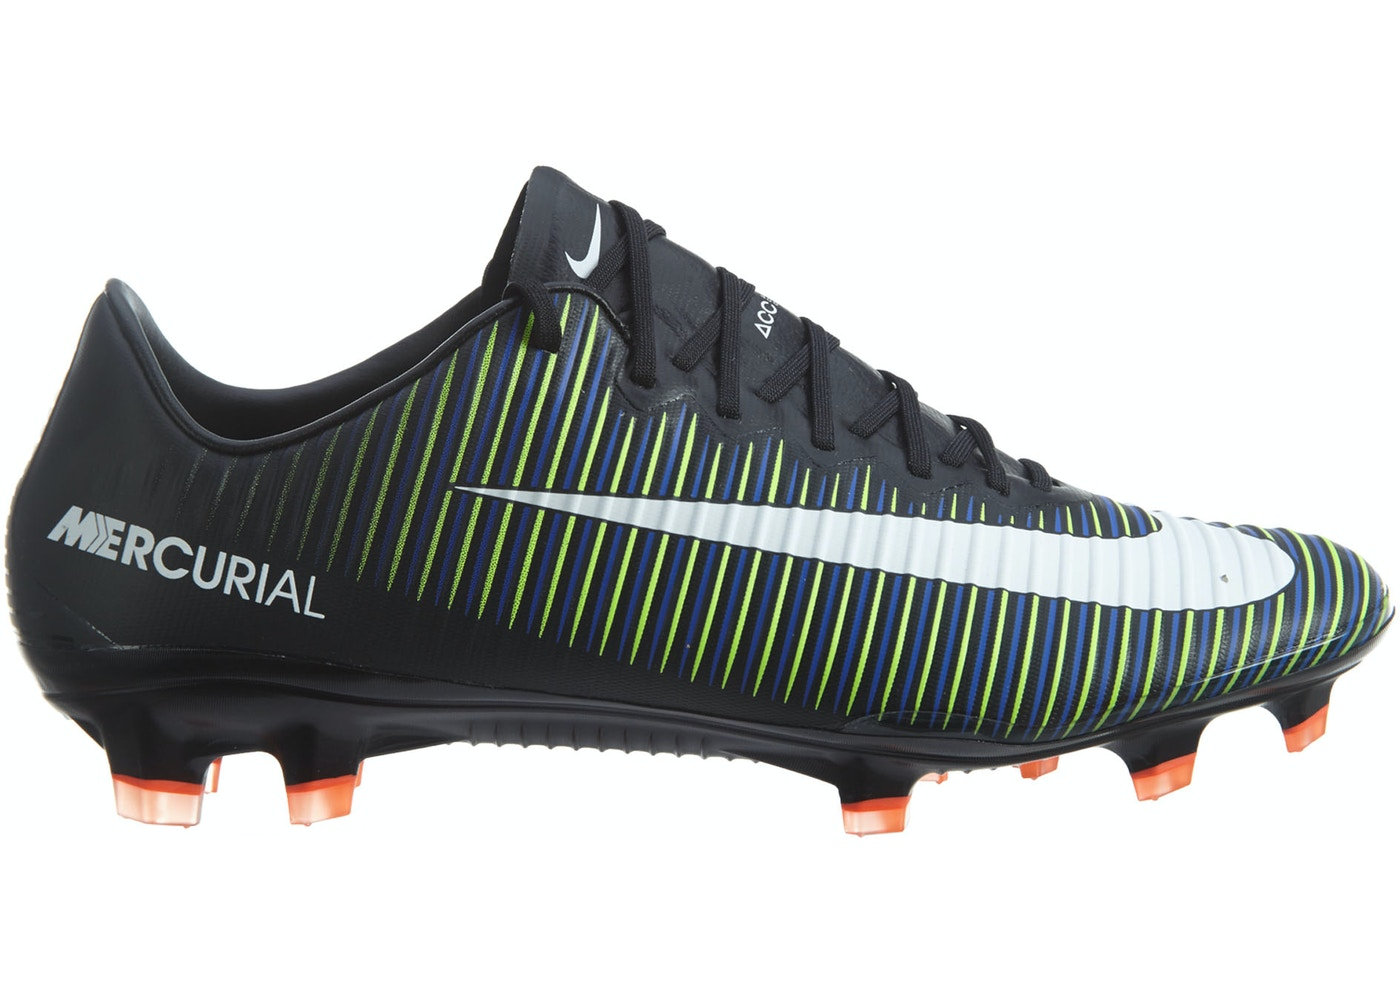 brand new 915d5 ad453 Nike Mercurial Vapor Xi Fg Black White-Electric Green ...